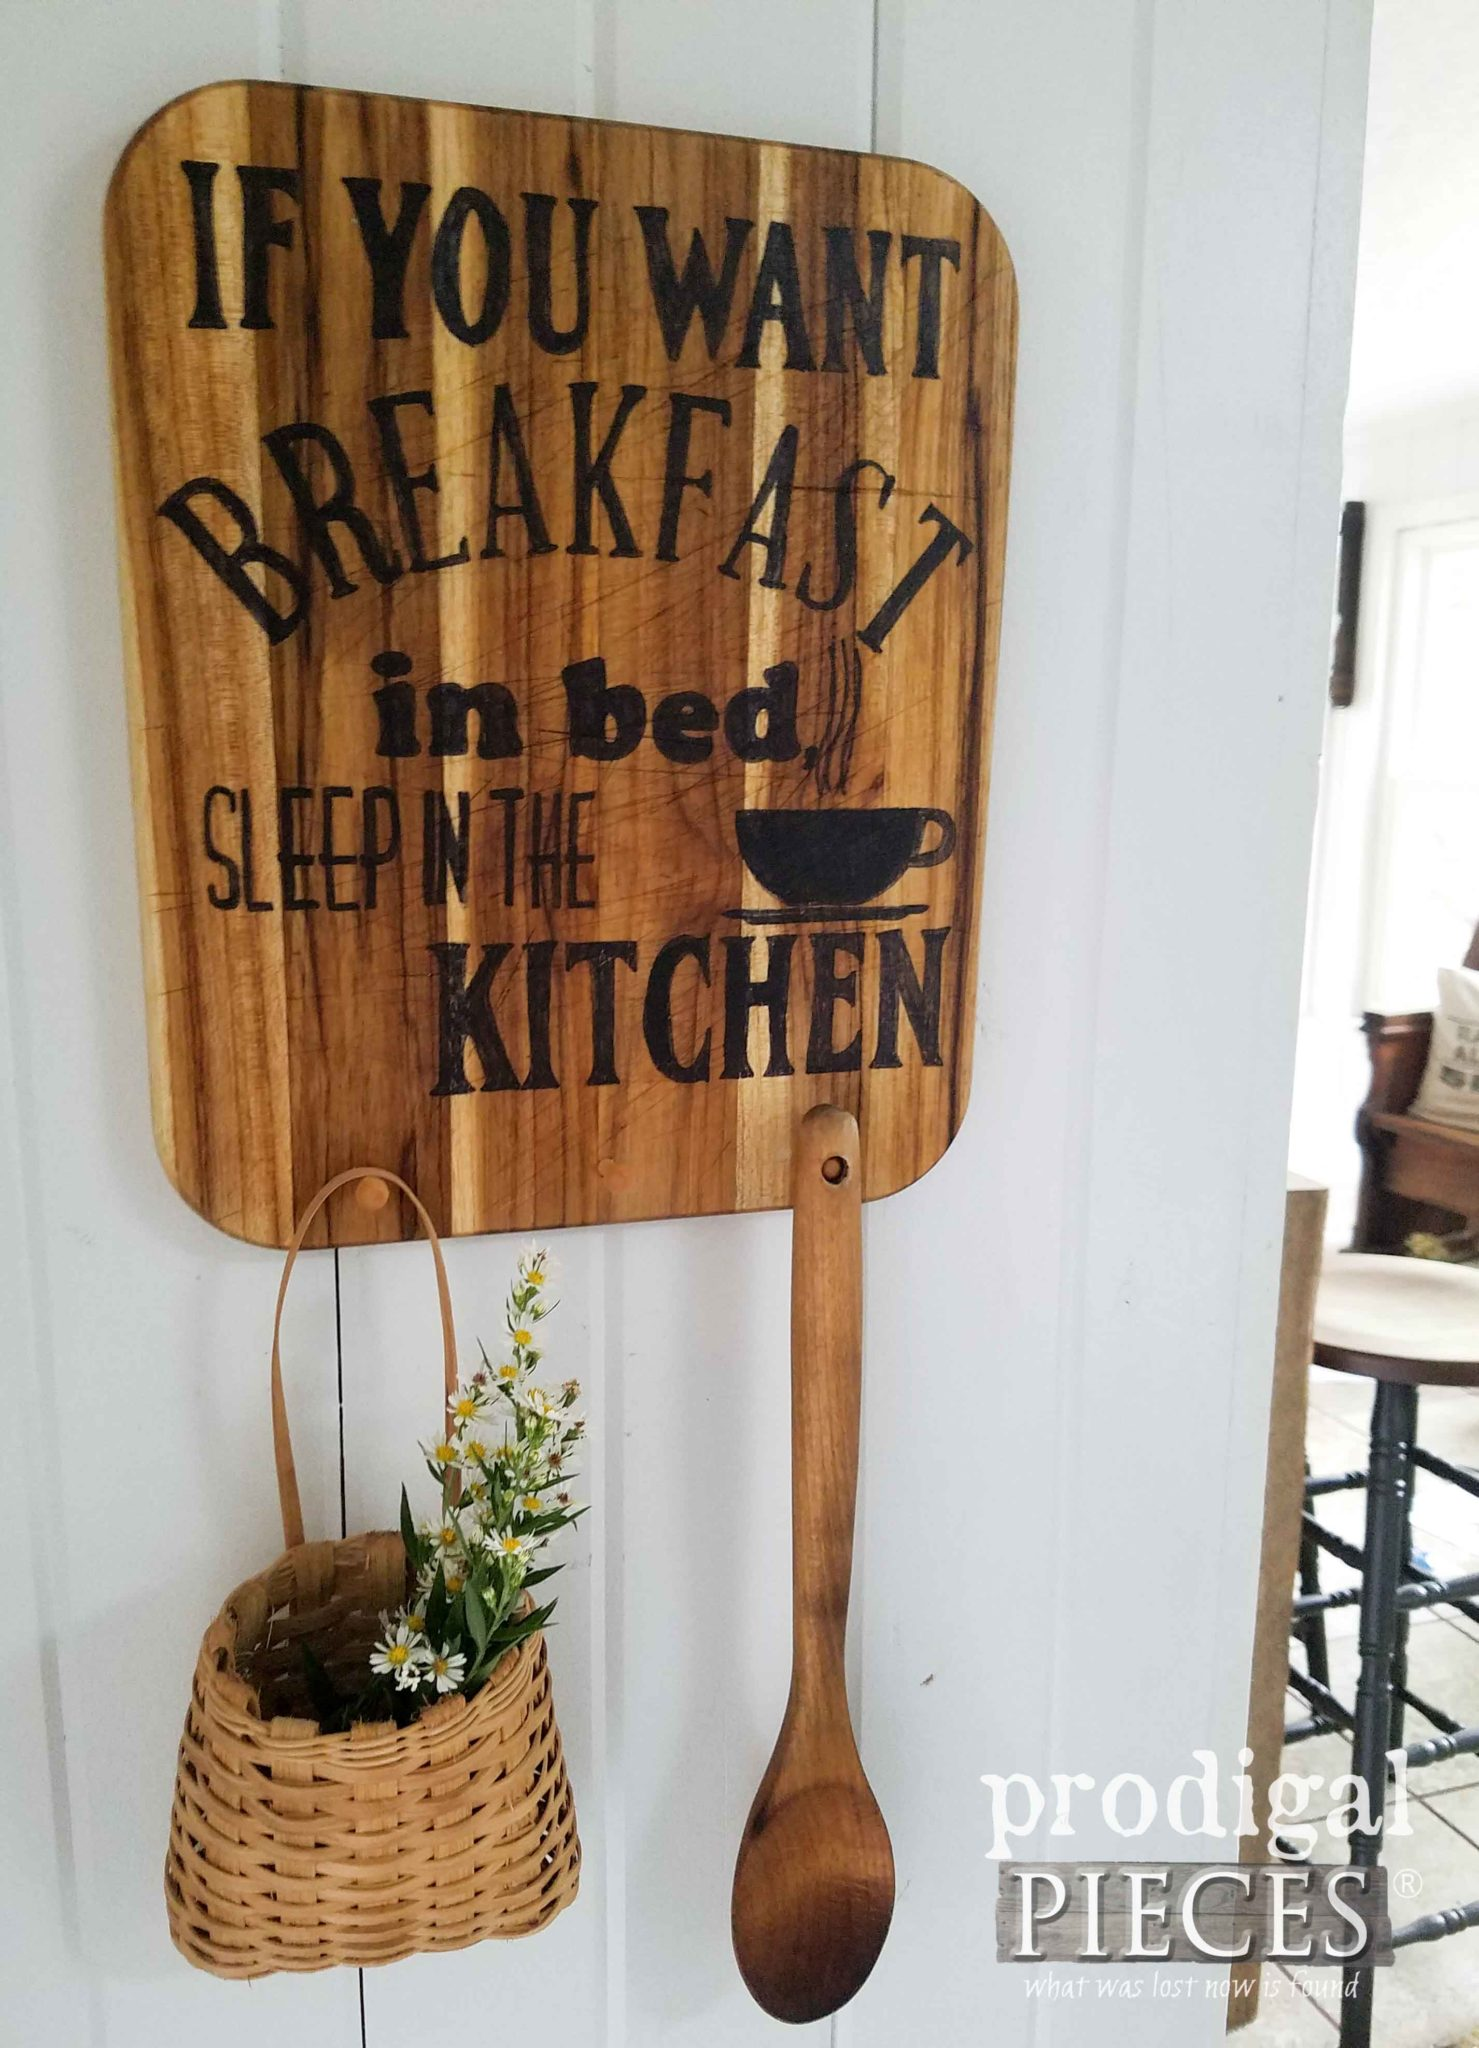 Repurposed Cutting Board Sign with Pegs. Whimsical kitchen decor available at Prodigal Pieces | prodigalpieces.com